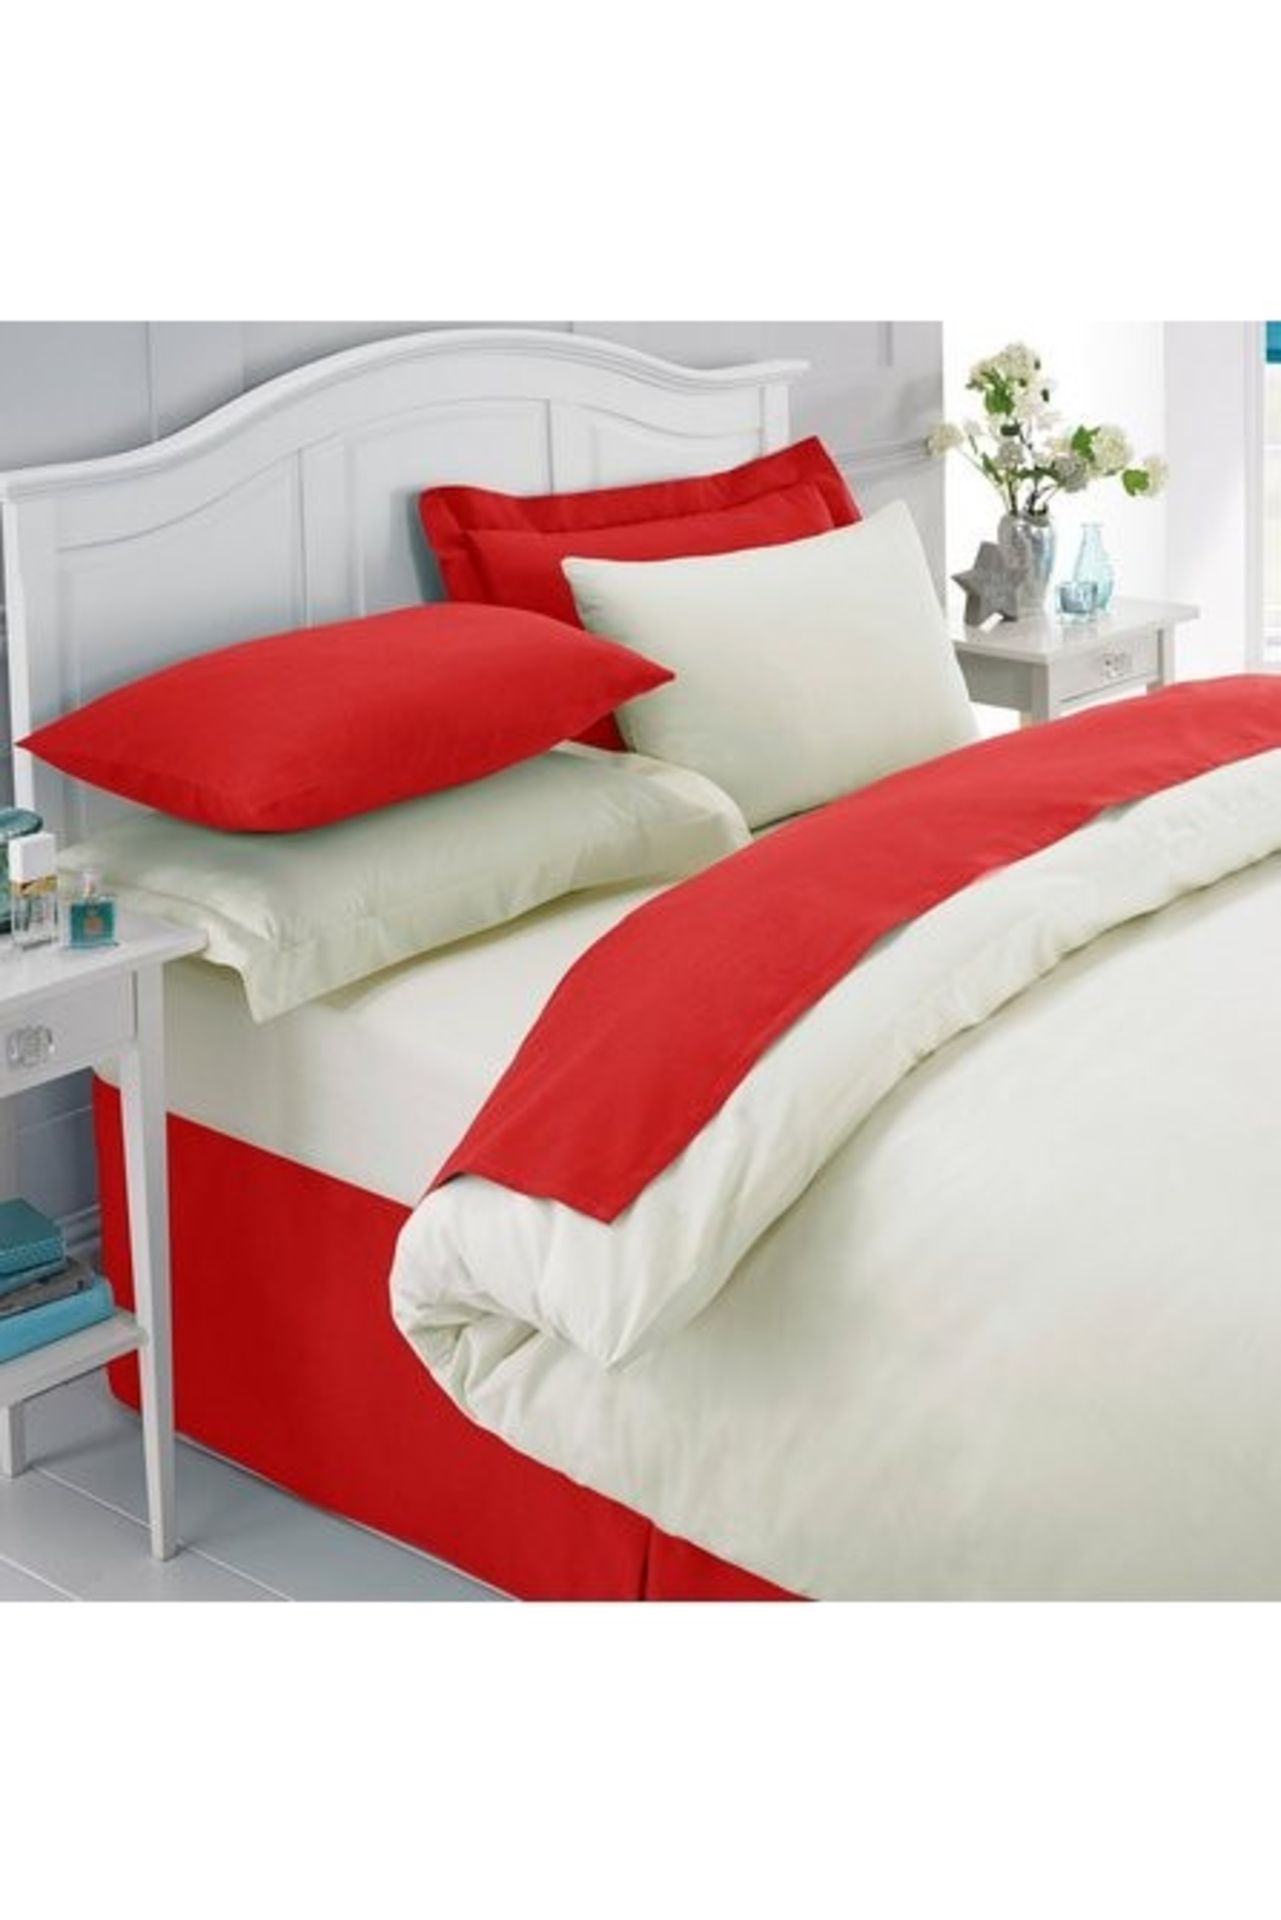 Lot 55 - 1 BAGGED PERCALE PLAIN DYED FLAT SHEET IN RED / RRP £33.49 (PUBLIC VIEWING AVAILABLE)